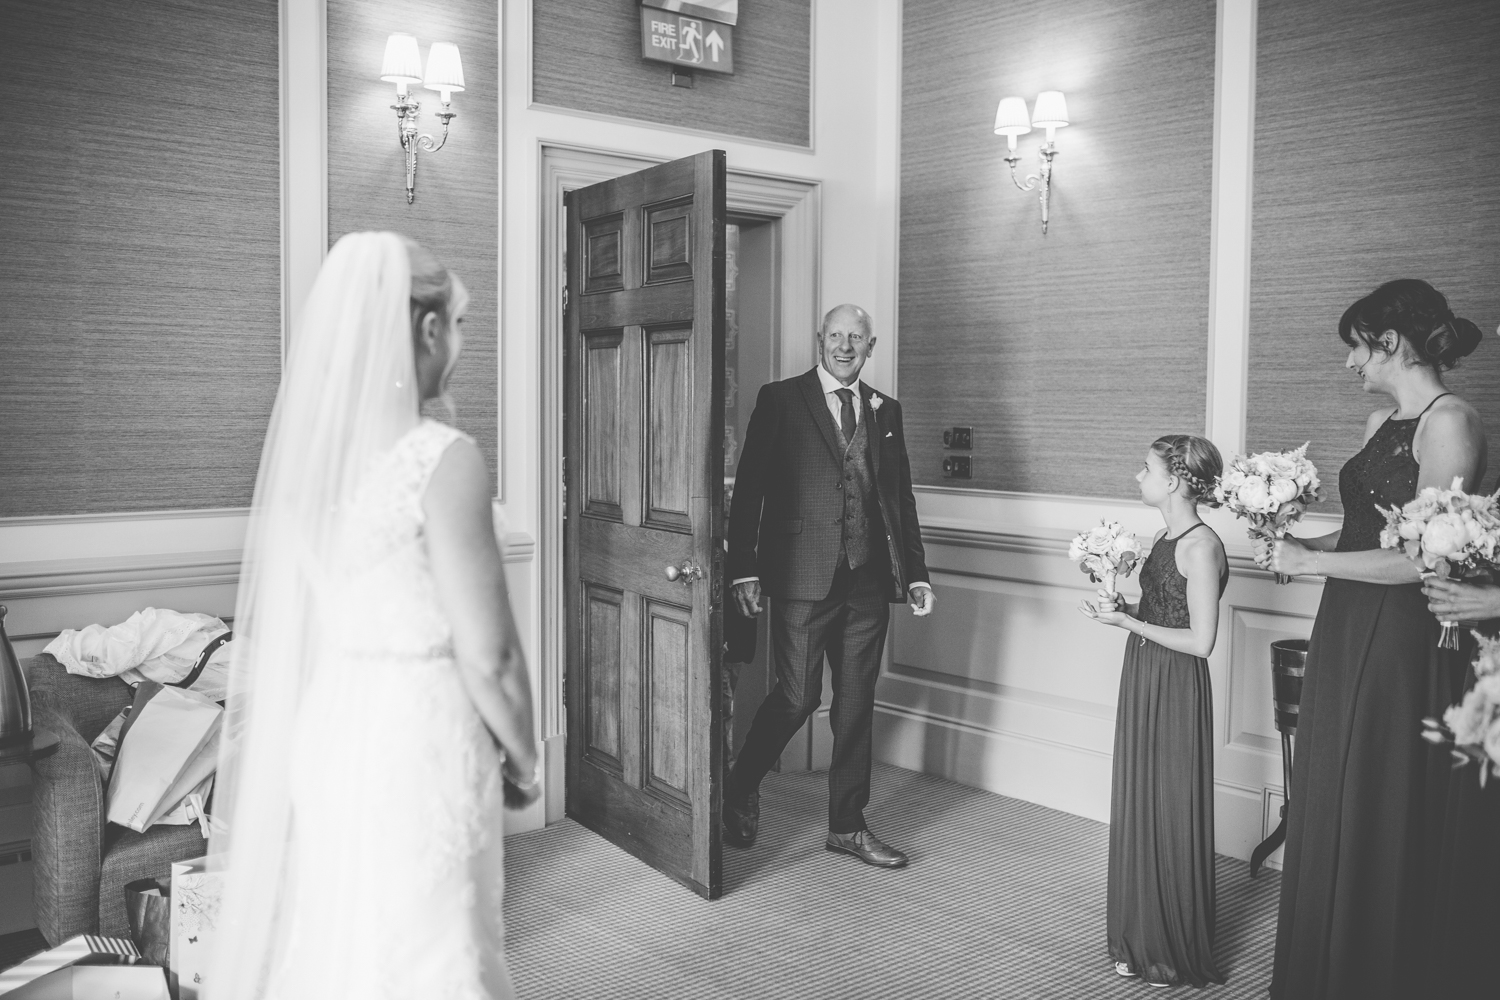 bowcliffe hall, wetherby, yorkshire wedding photography11.jpg